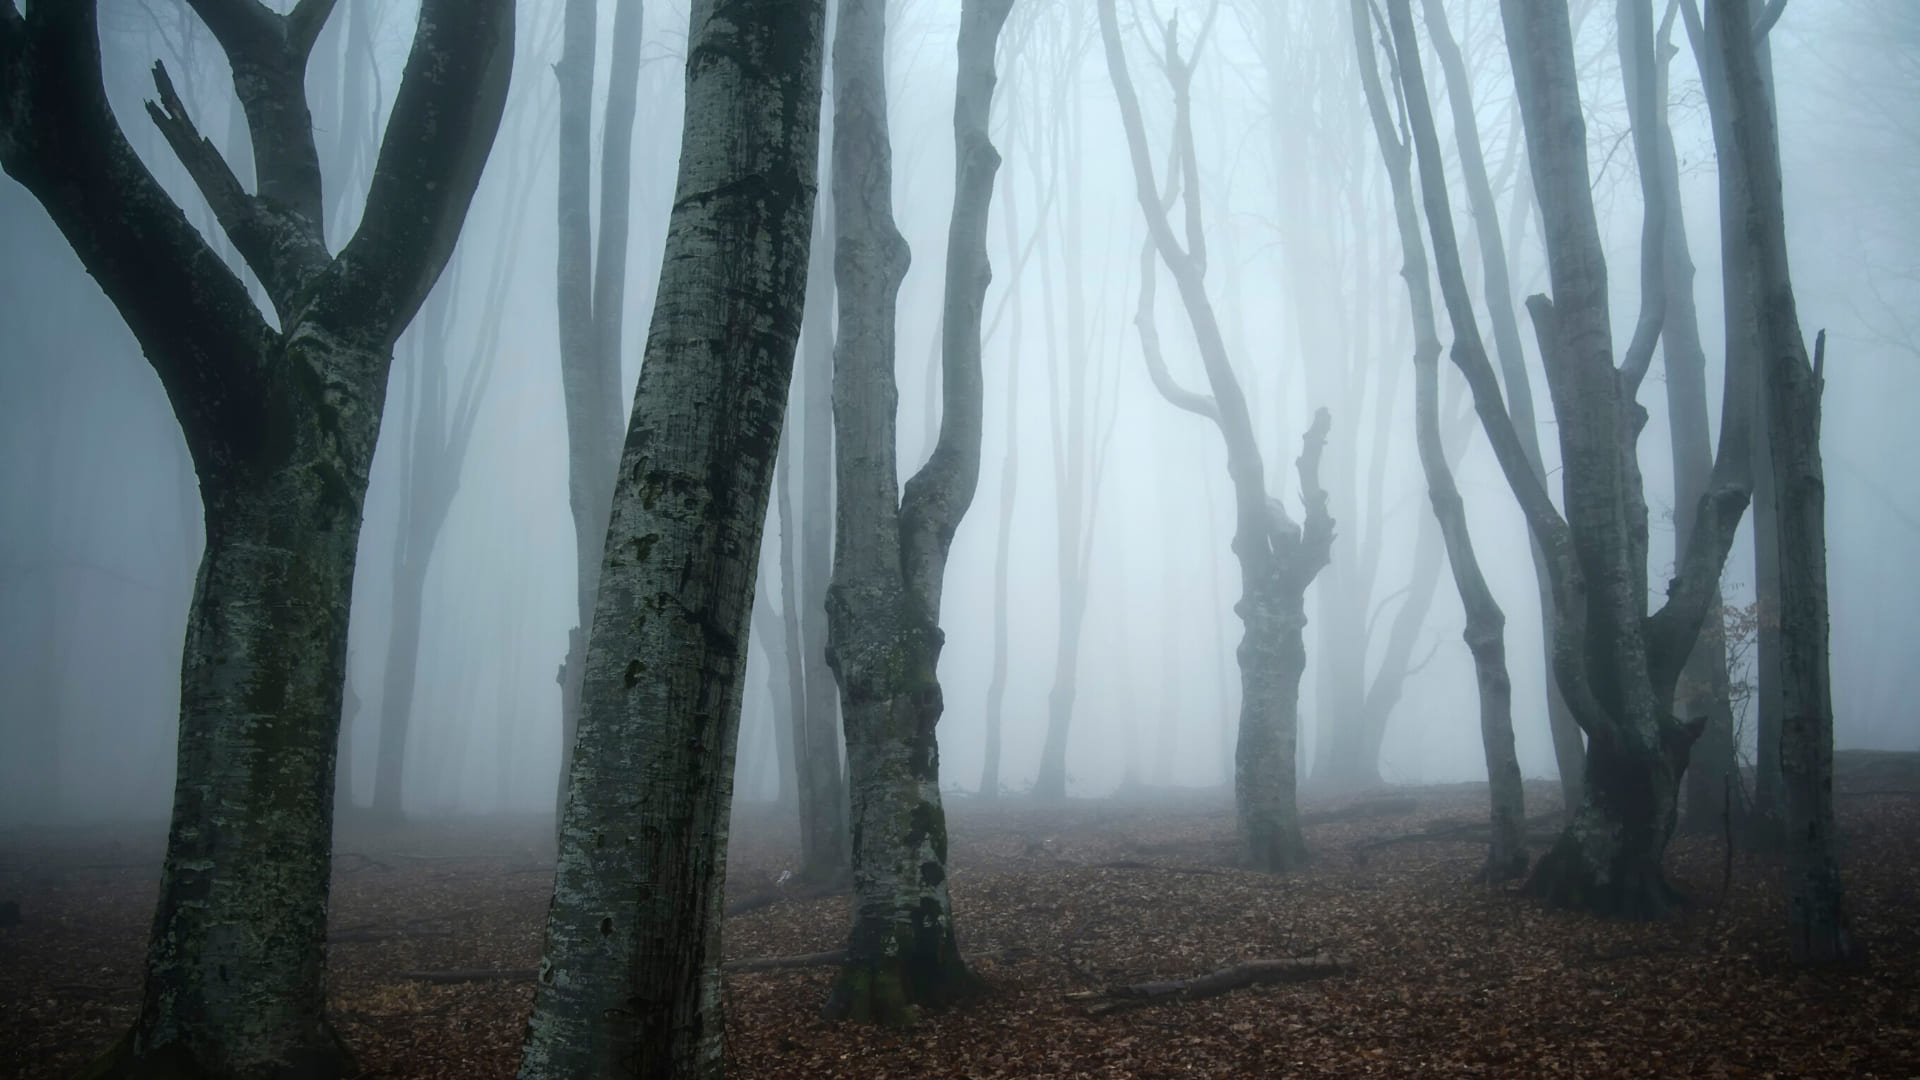 Creepy forest backgrounds